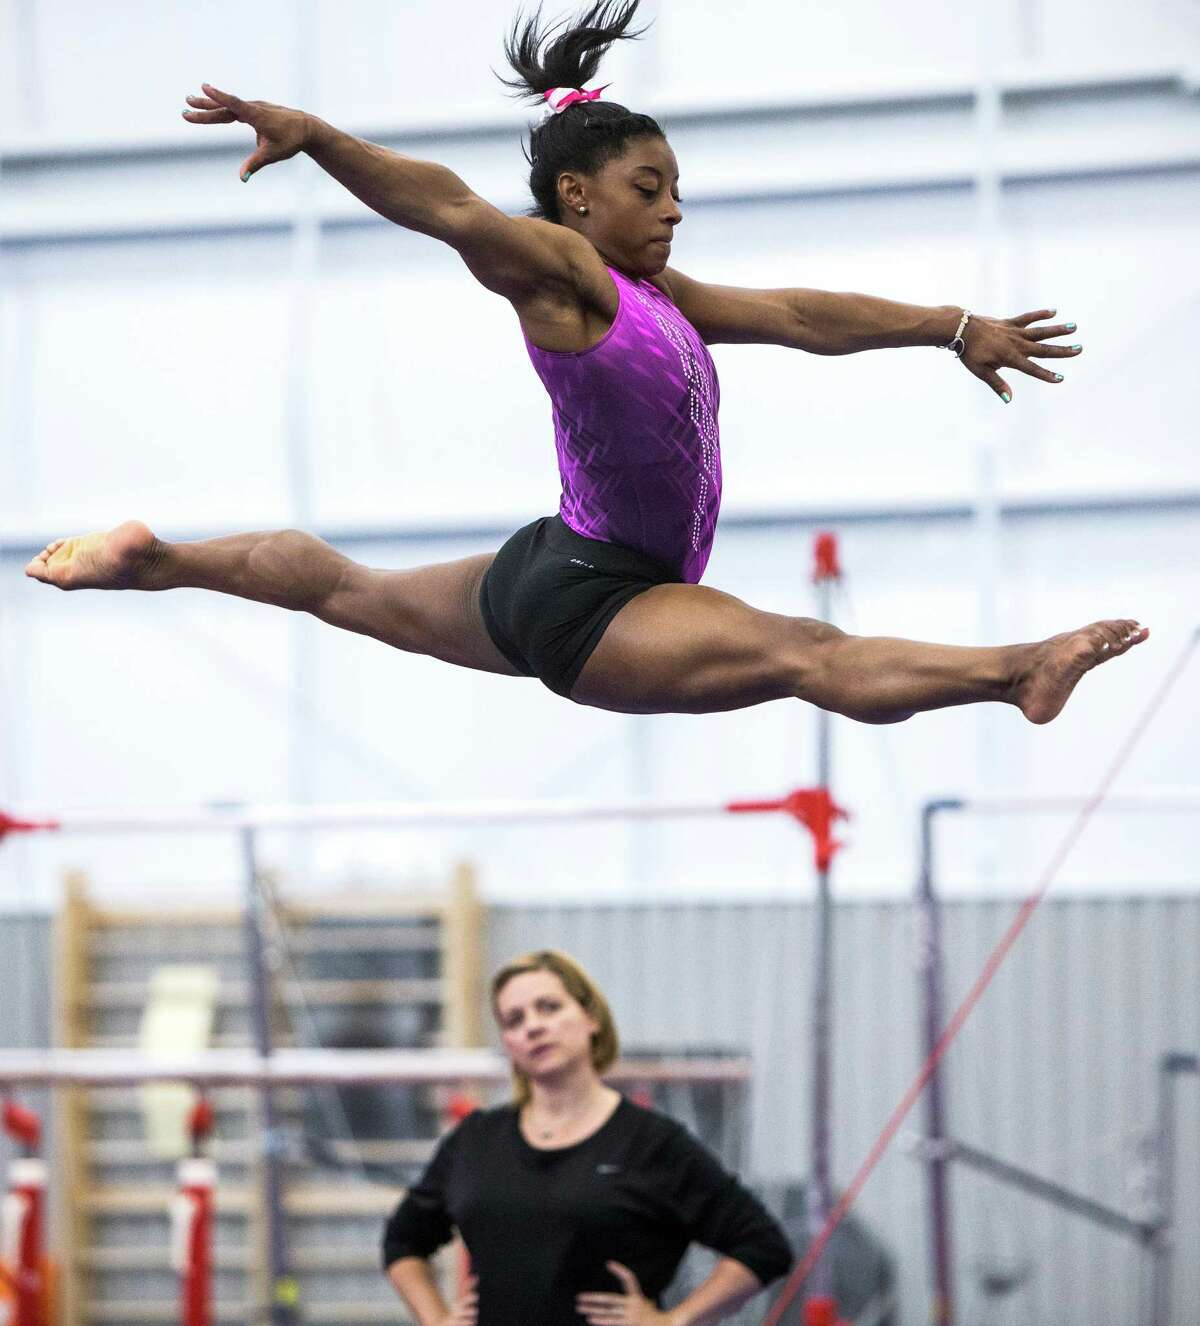 Under the watchful eye of coach Aimee Boorman, Simone Biles has won three consecutive world all-around championships and has her sights on Olympic gold.